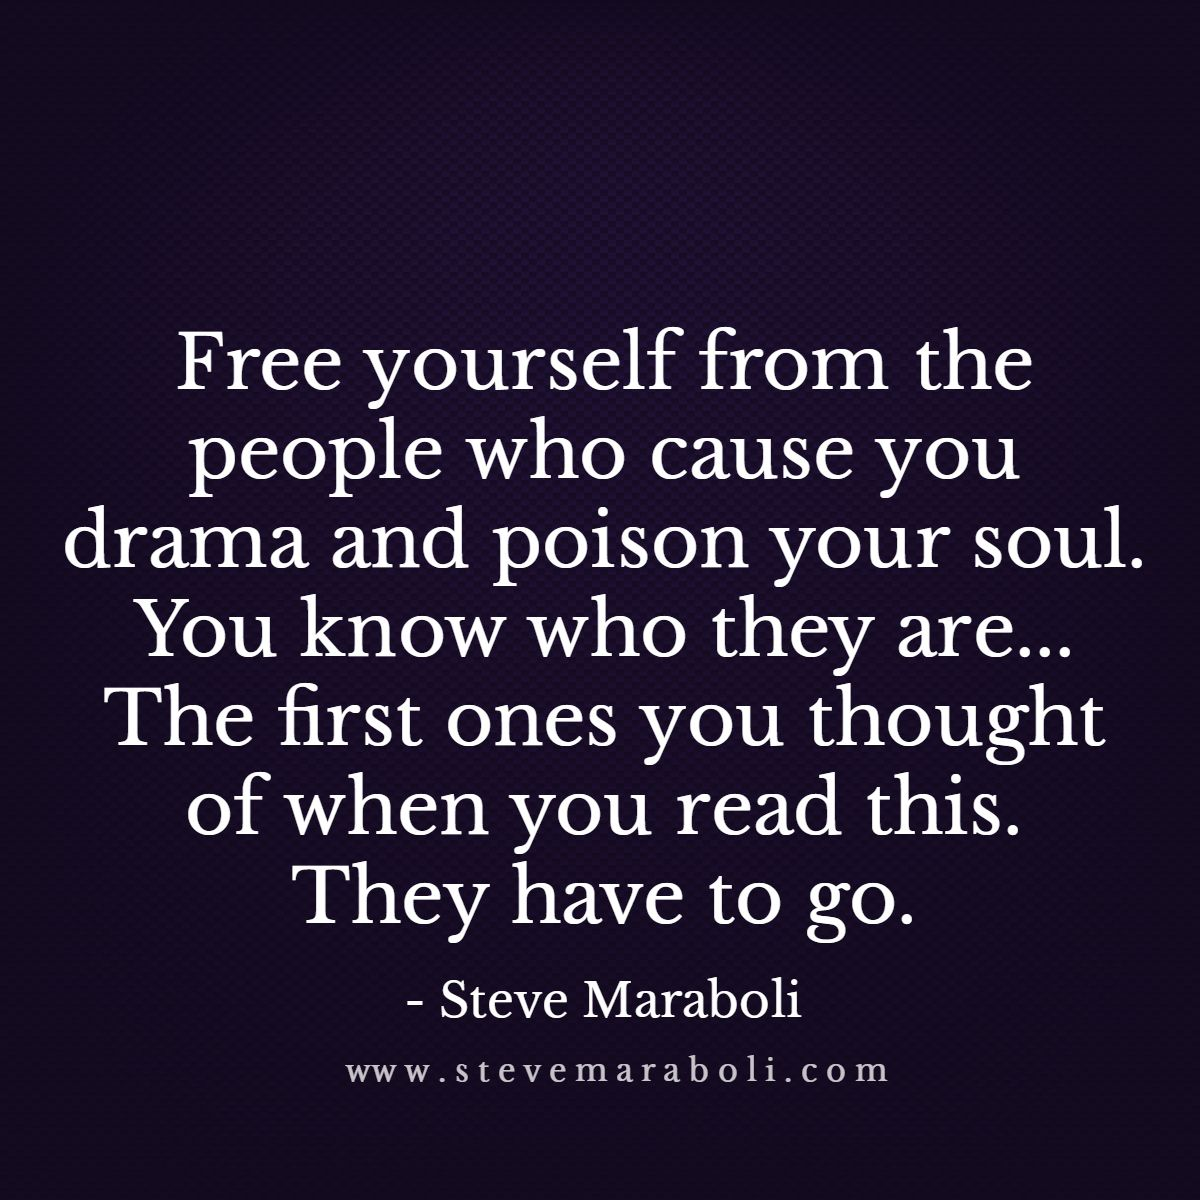 yourself from the people who cause you drama and poison your